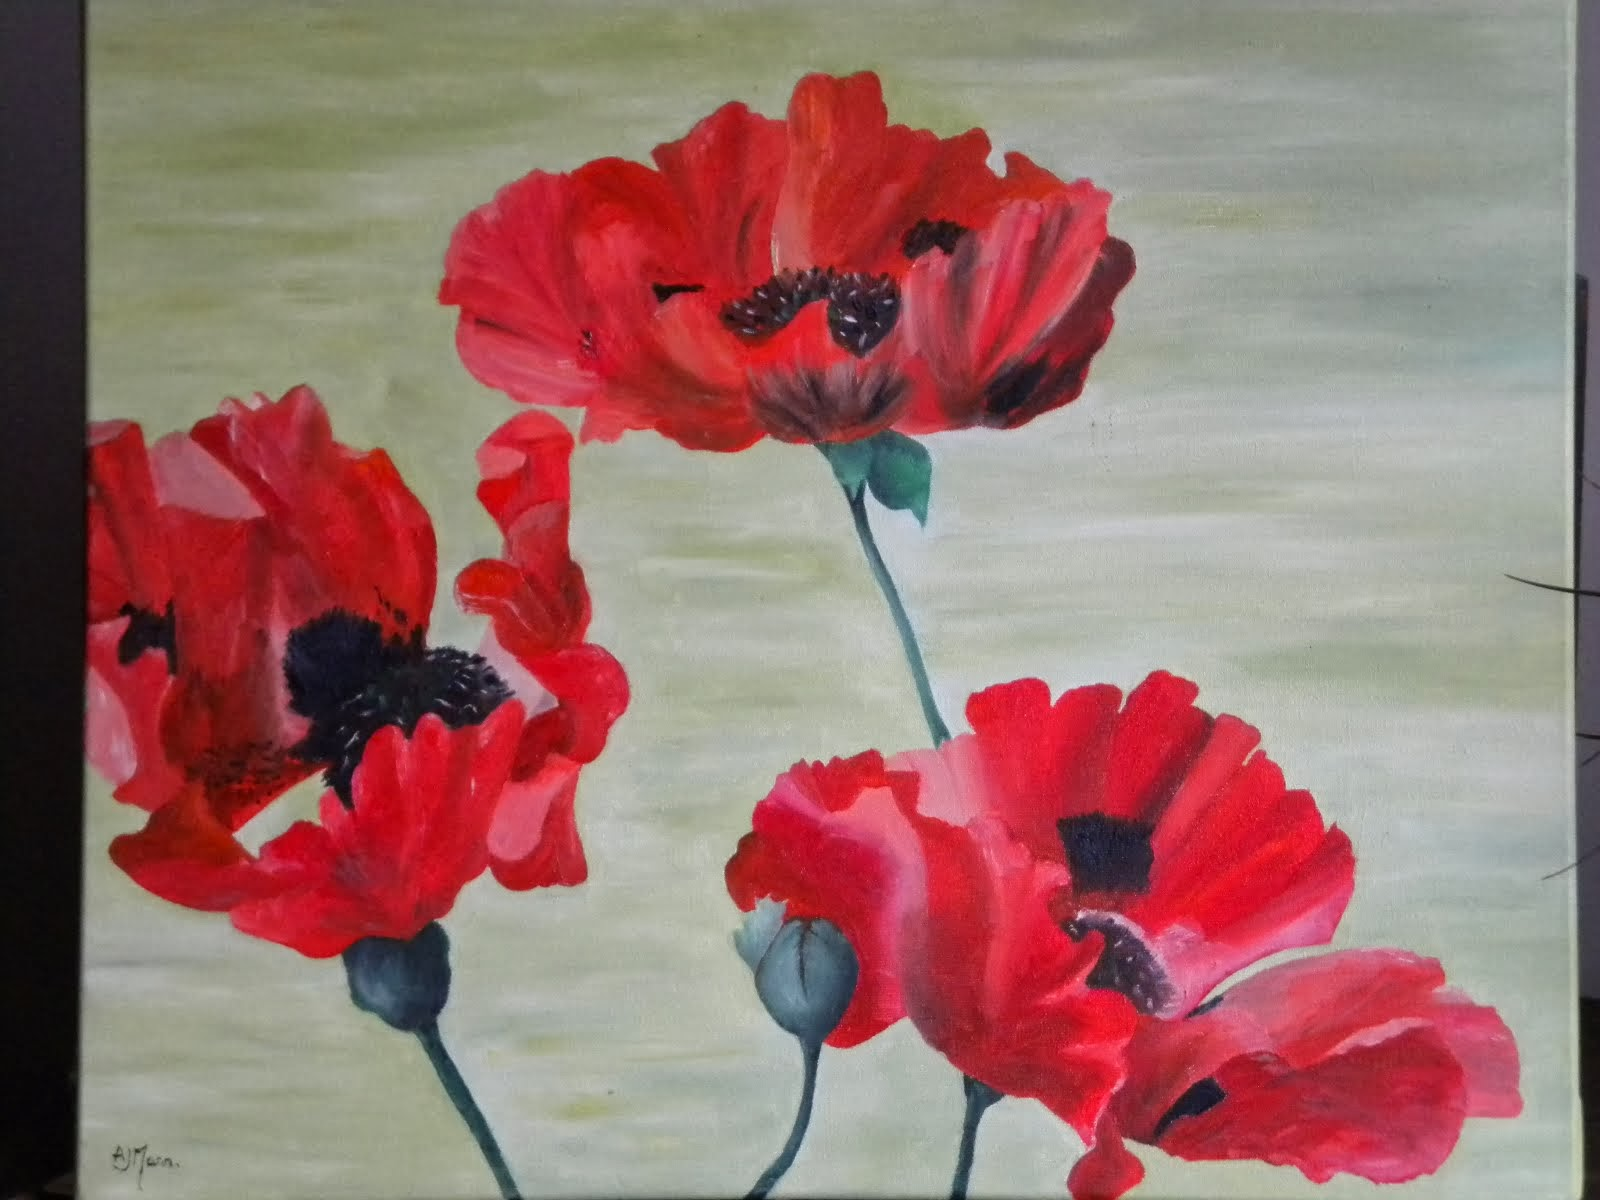 Poppies by Alison Mann